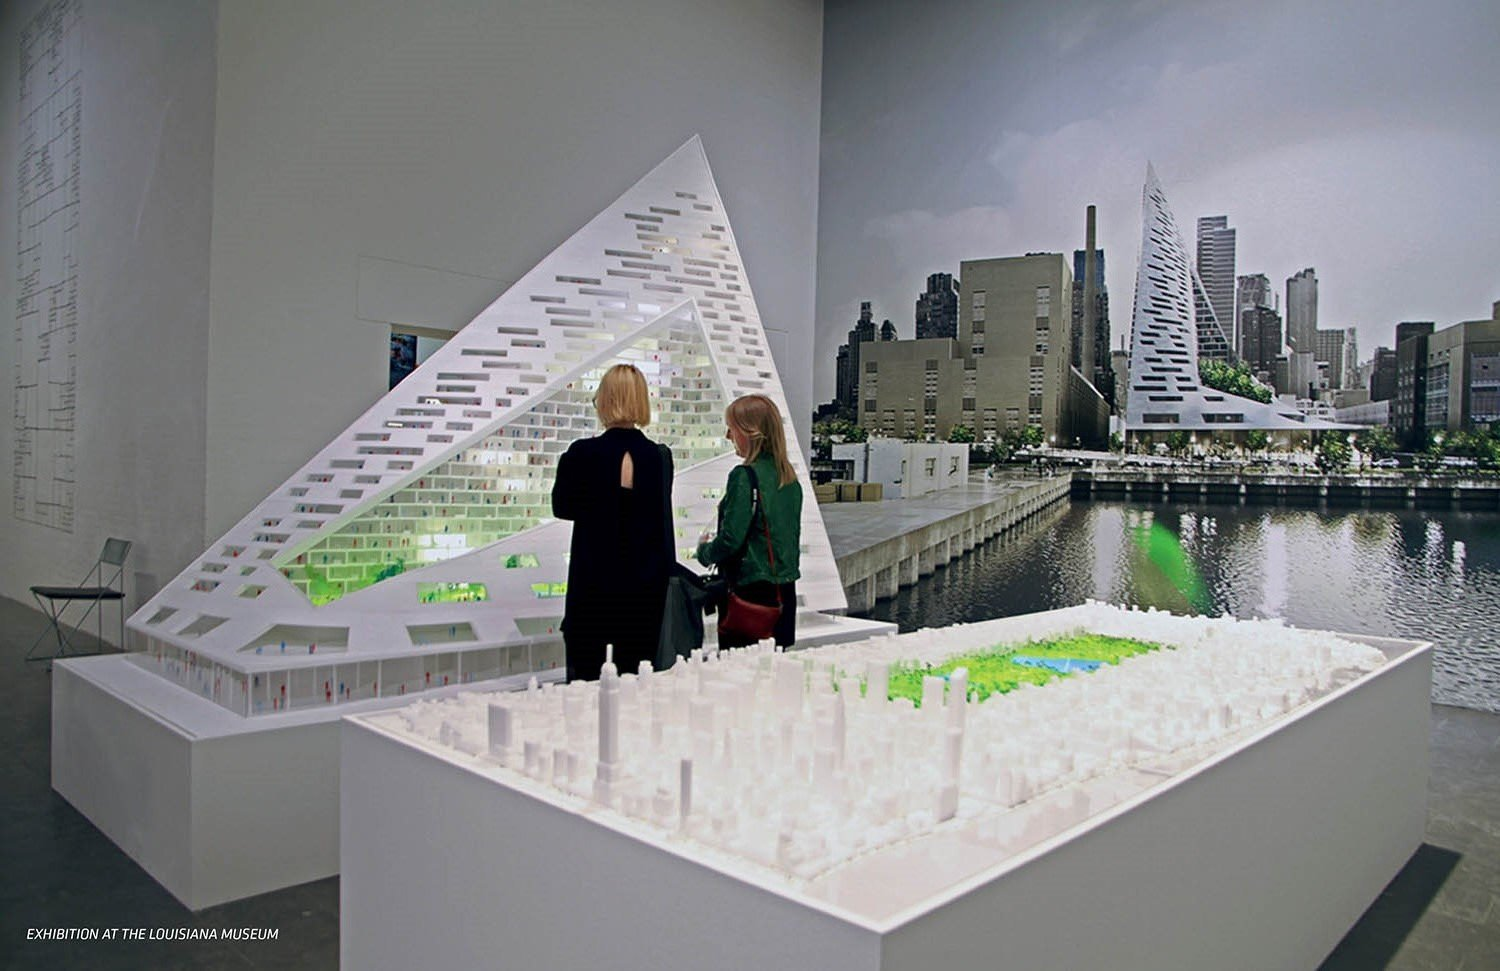 VIA and Central Park models at an exhibition at the Louisiana Museum }